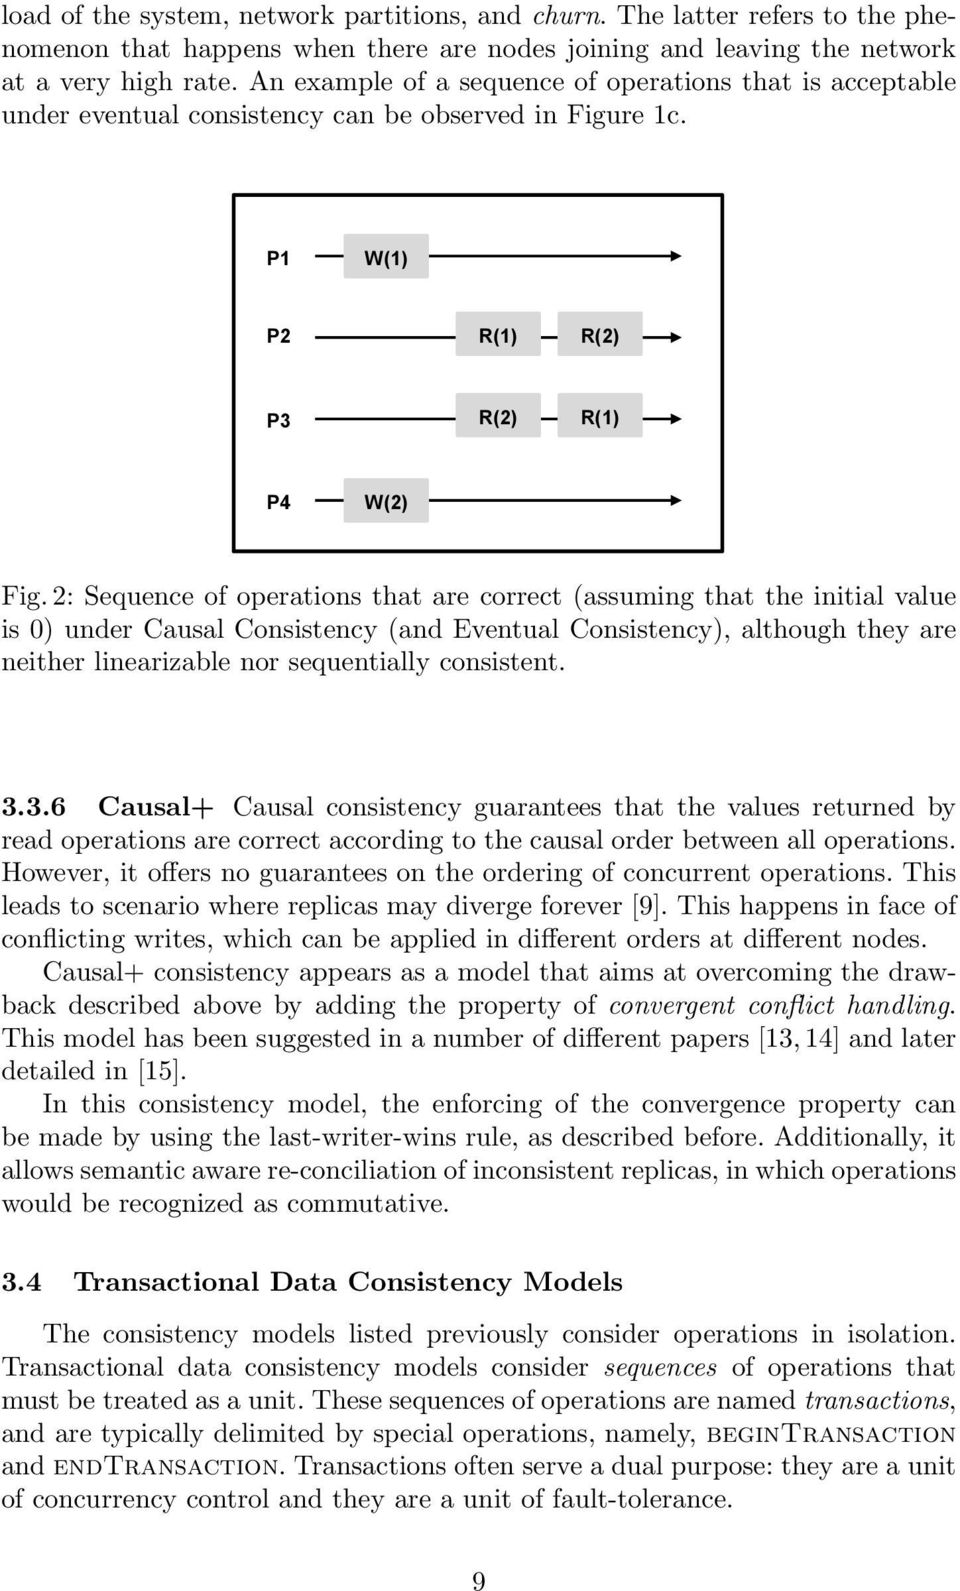 2: Sequence of operations that are correct (assuming that the initial value is 0) under Causal Consistency (and Eventual Consistency), although they are neither linearizable nor sequentially